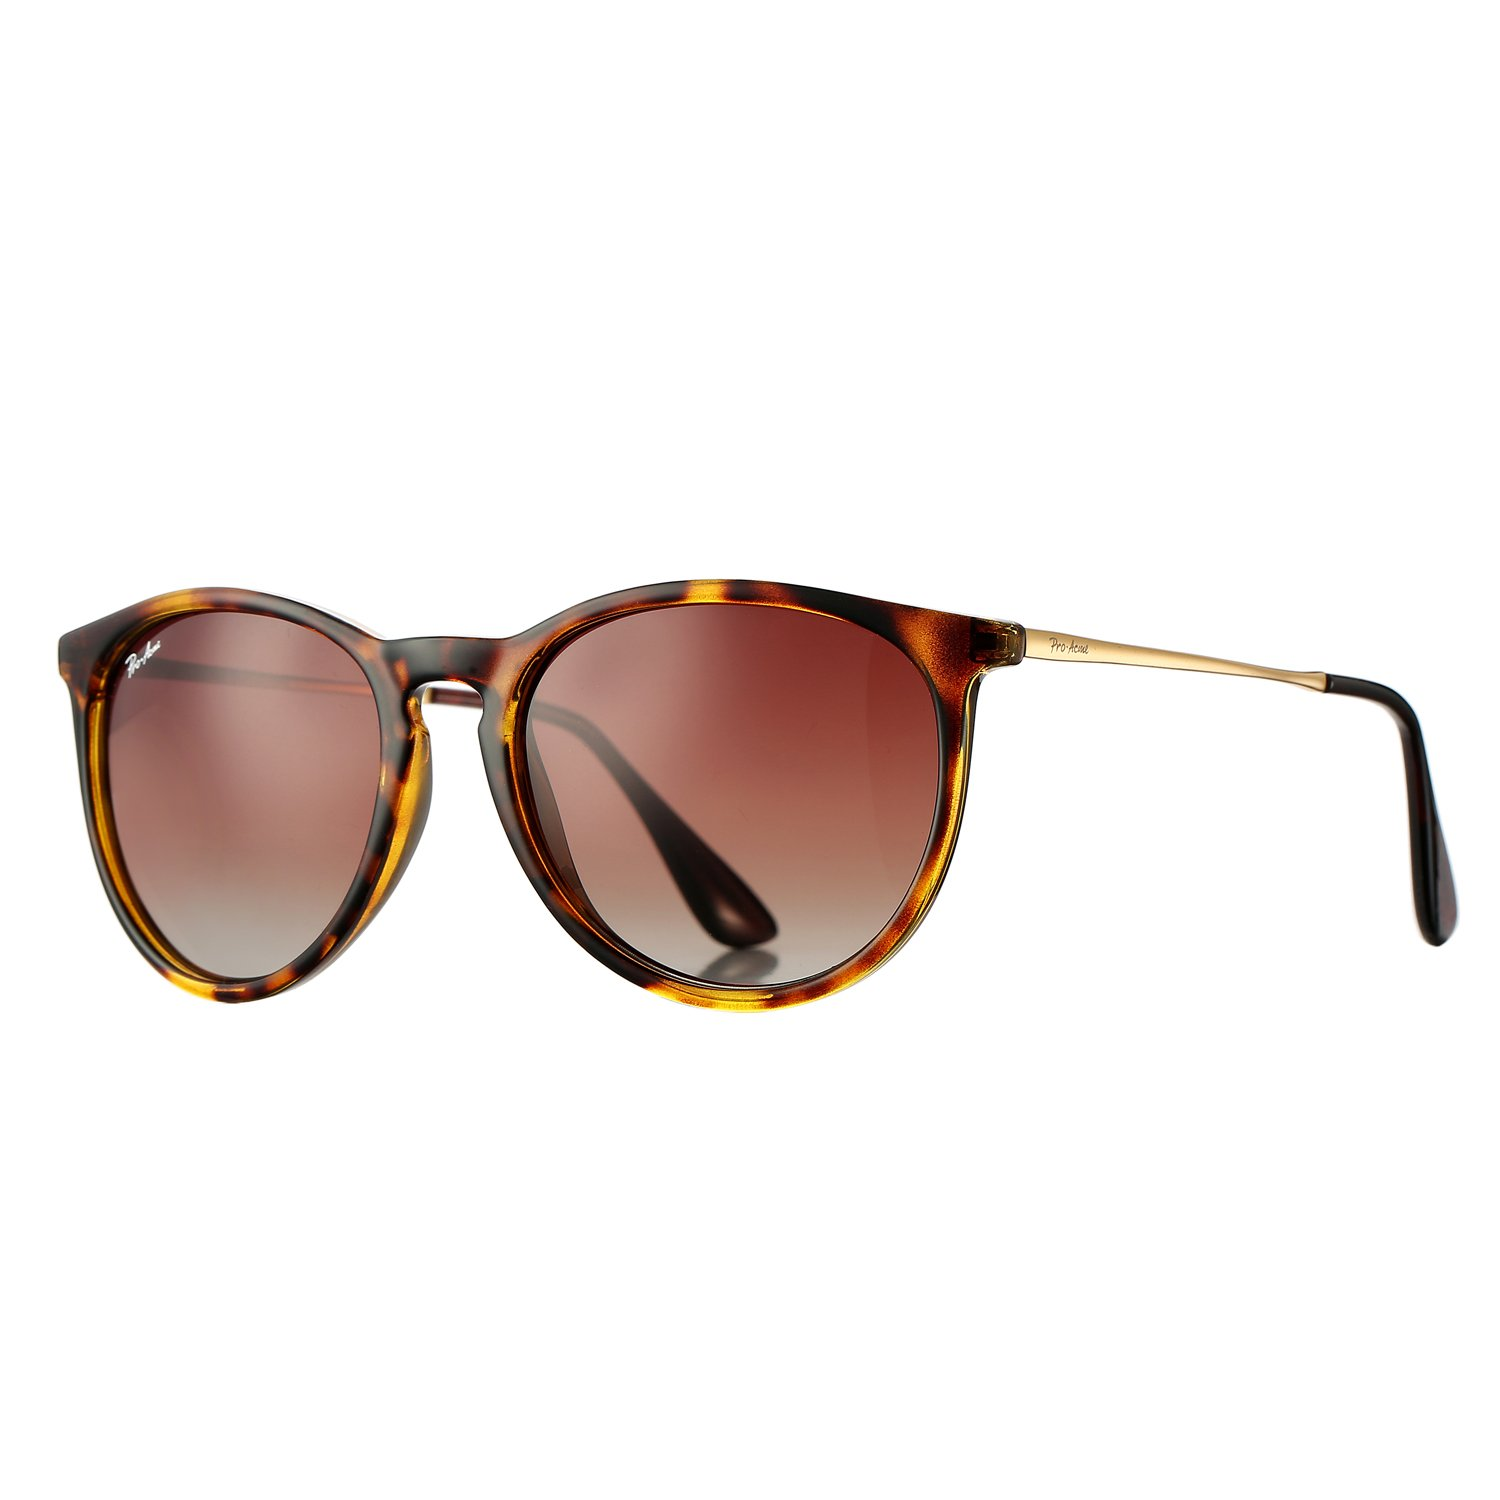 Polarized Sunglasses for Women Classic Round Style 100% UV Protection (Tortoise; Gold/Brown Gradient)